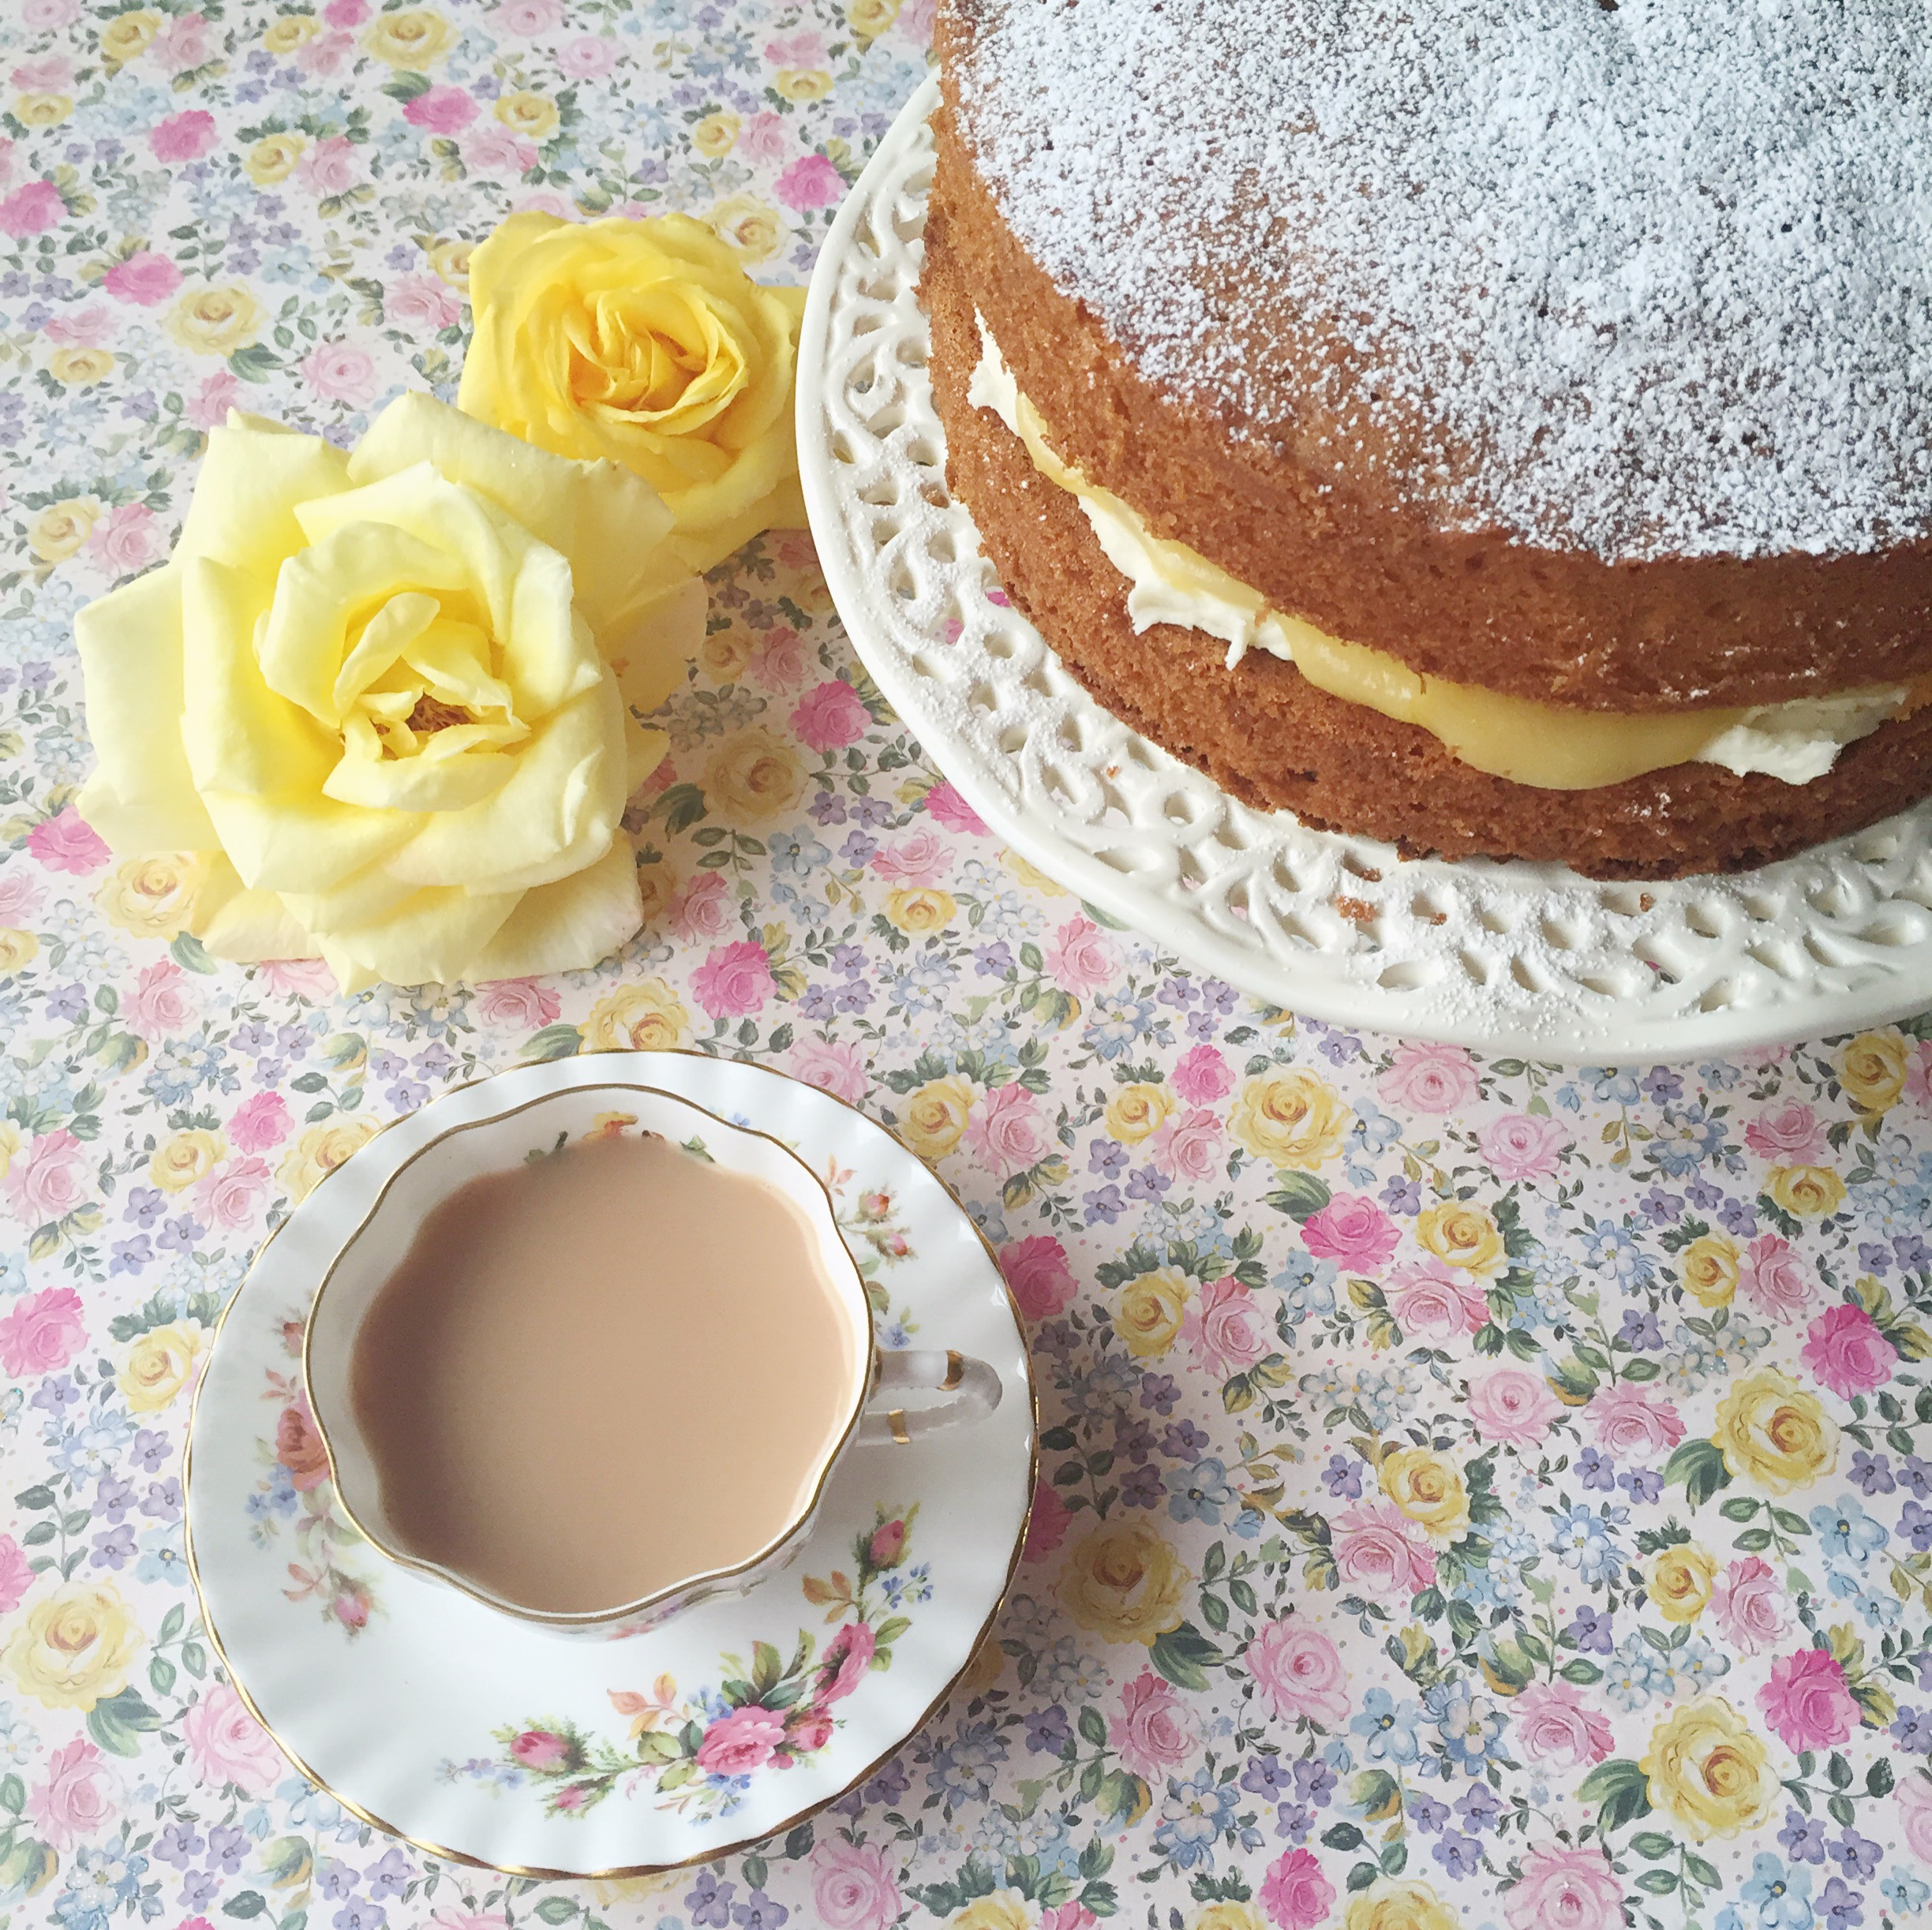 Lemon Victoria Sponge Mary Berry.JPG